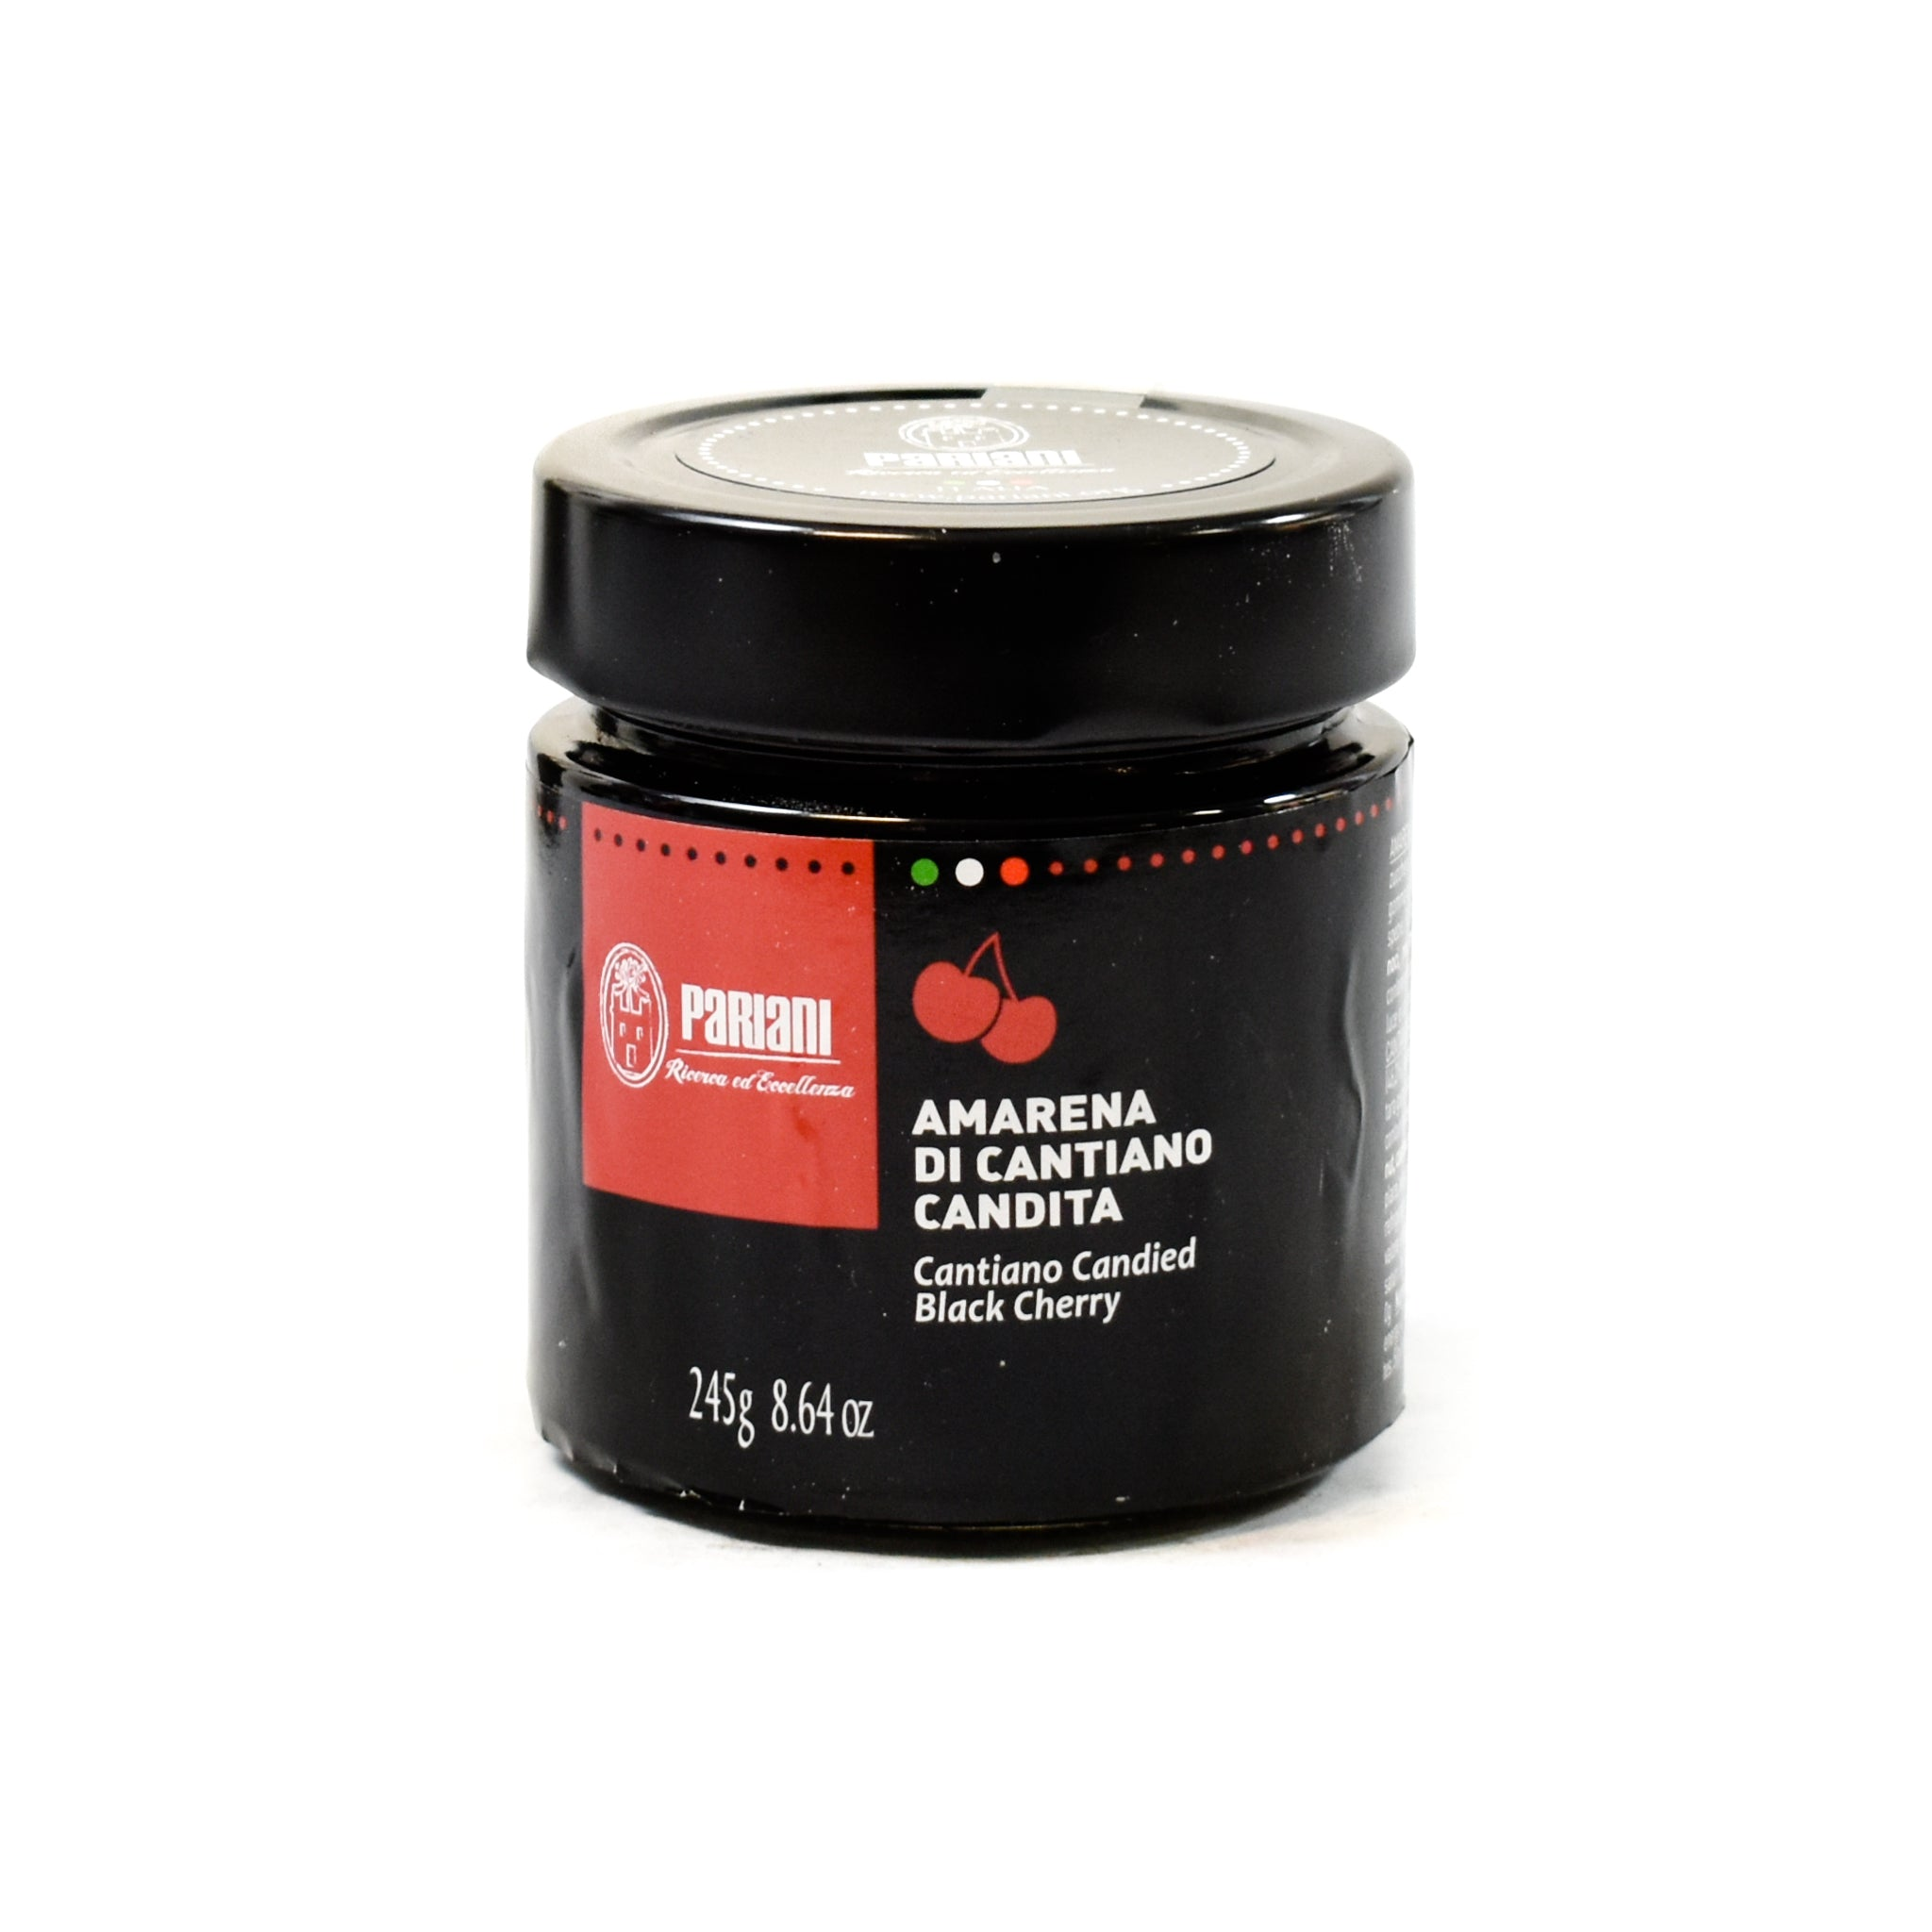 Pariani Candied Black Cherry 245g Ingredients Baking Ingredients Dried & Preserved Fruit Italian Food